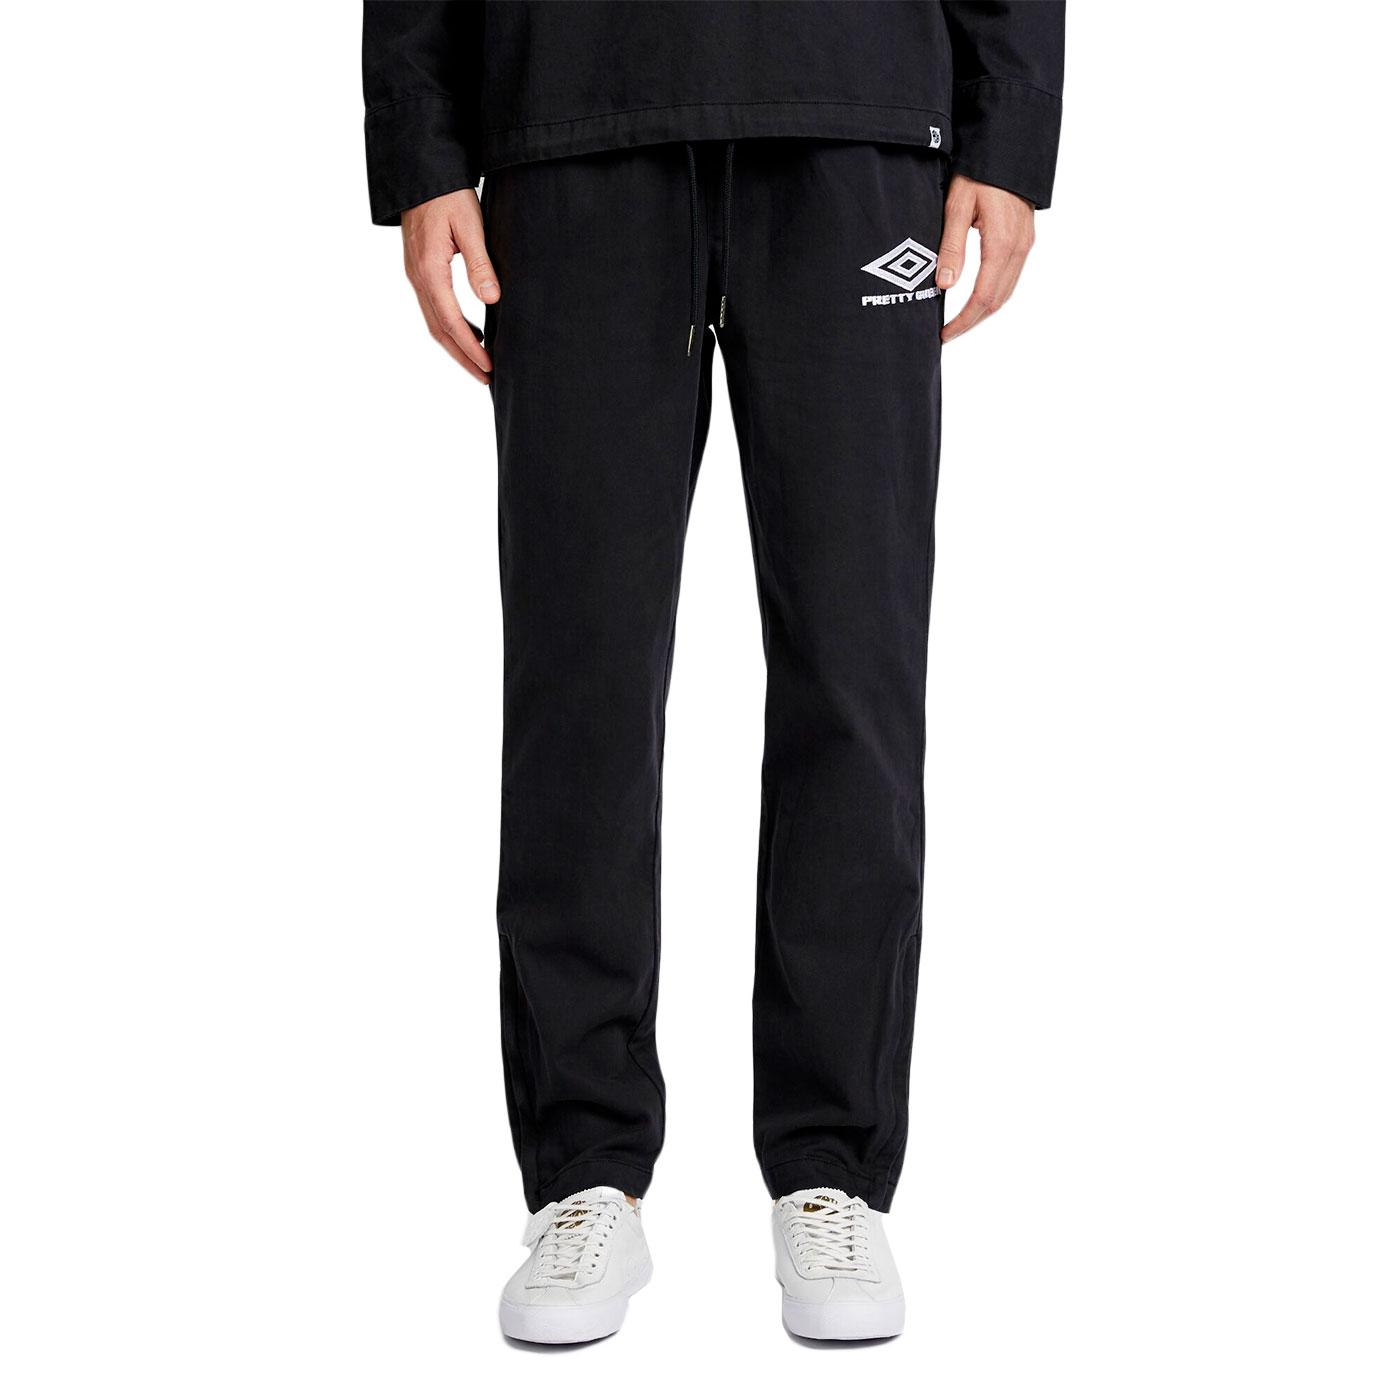 PRETTY GREEN X UMBRO Retro Drill Track Pants B